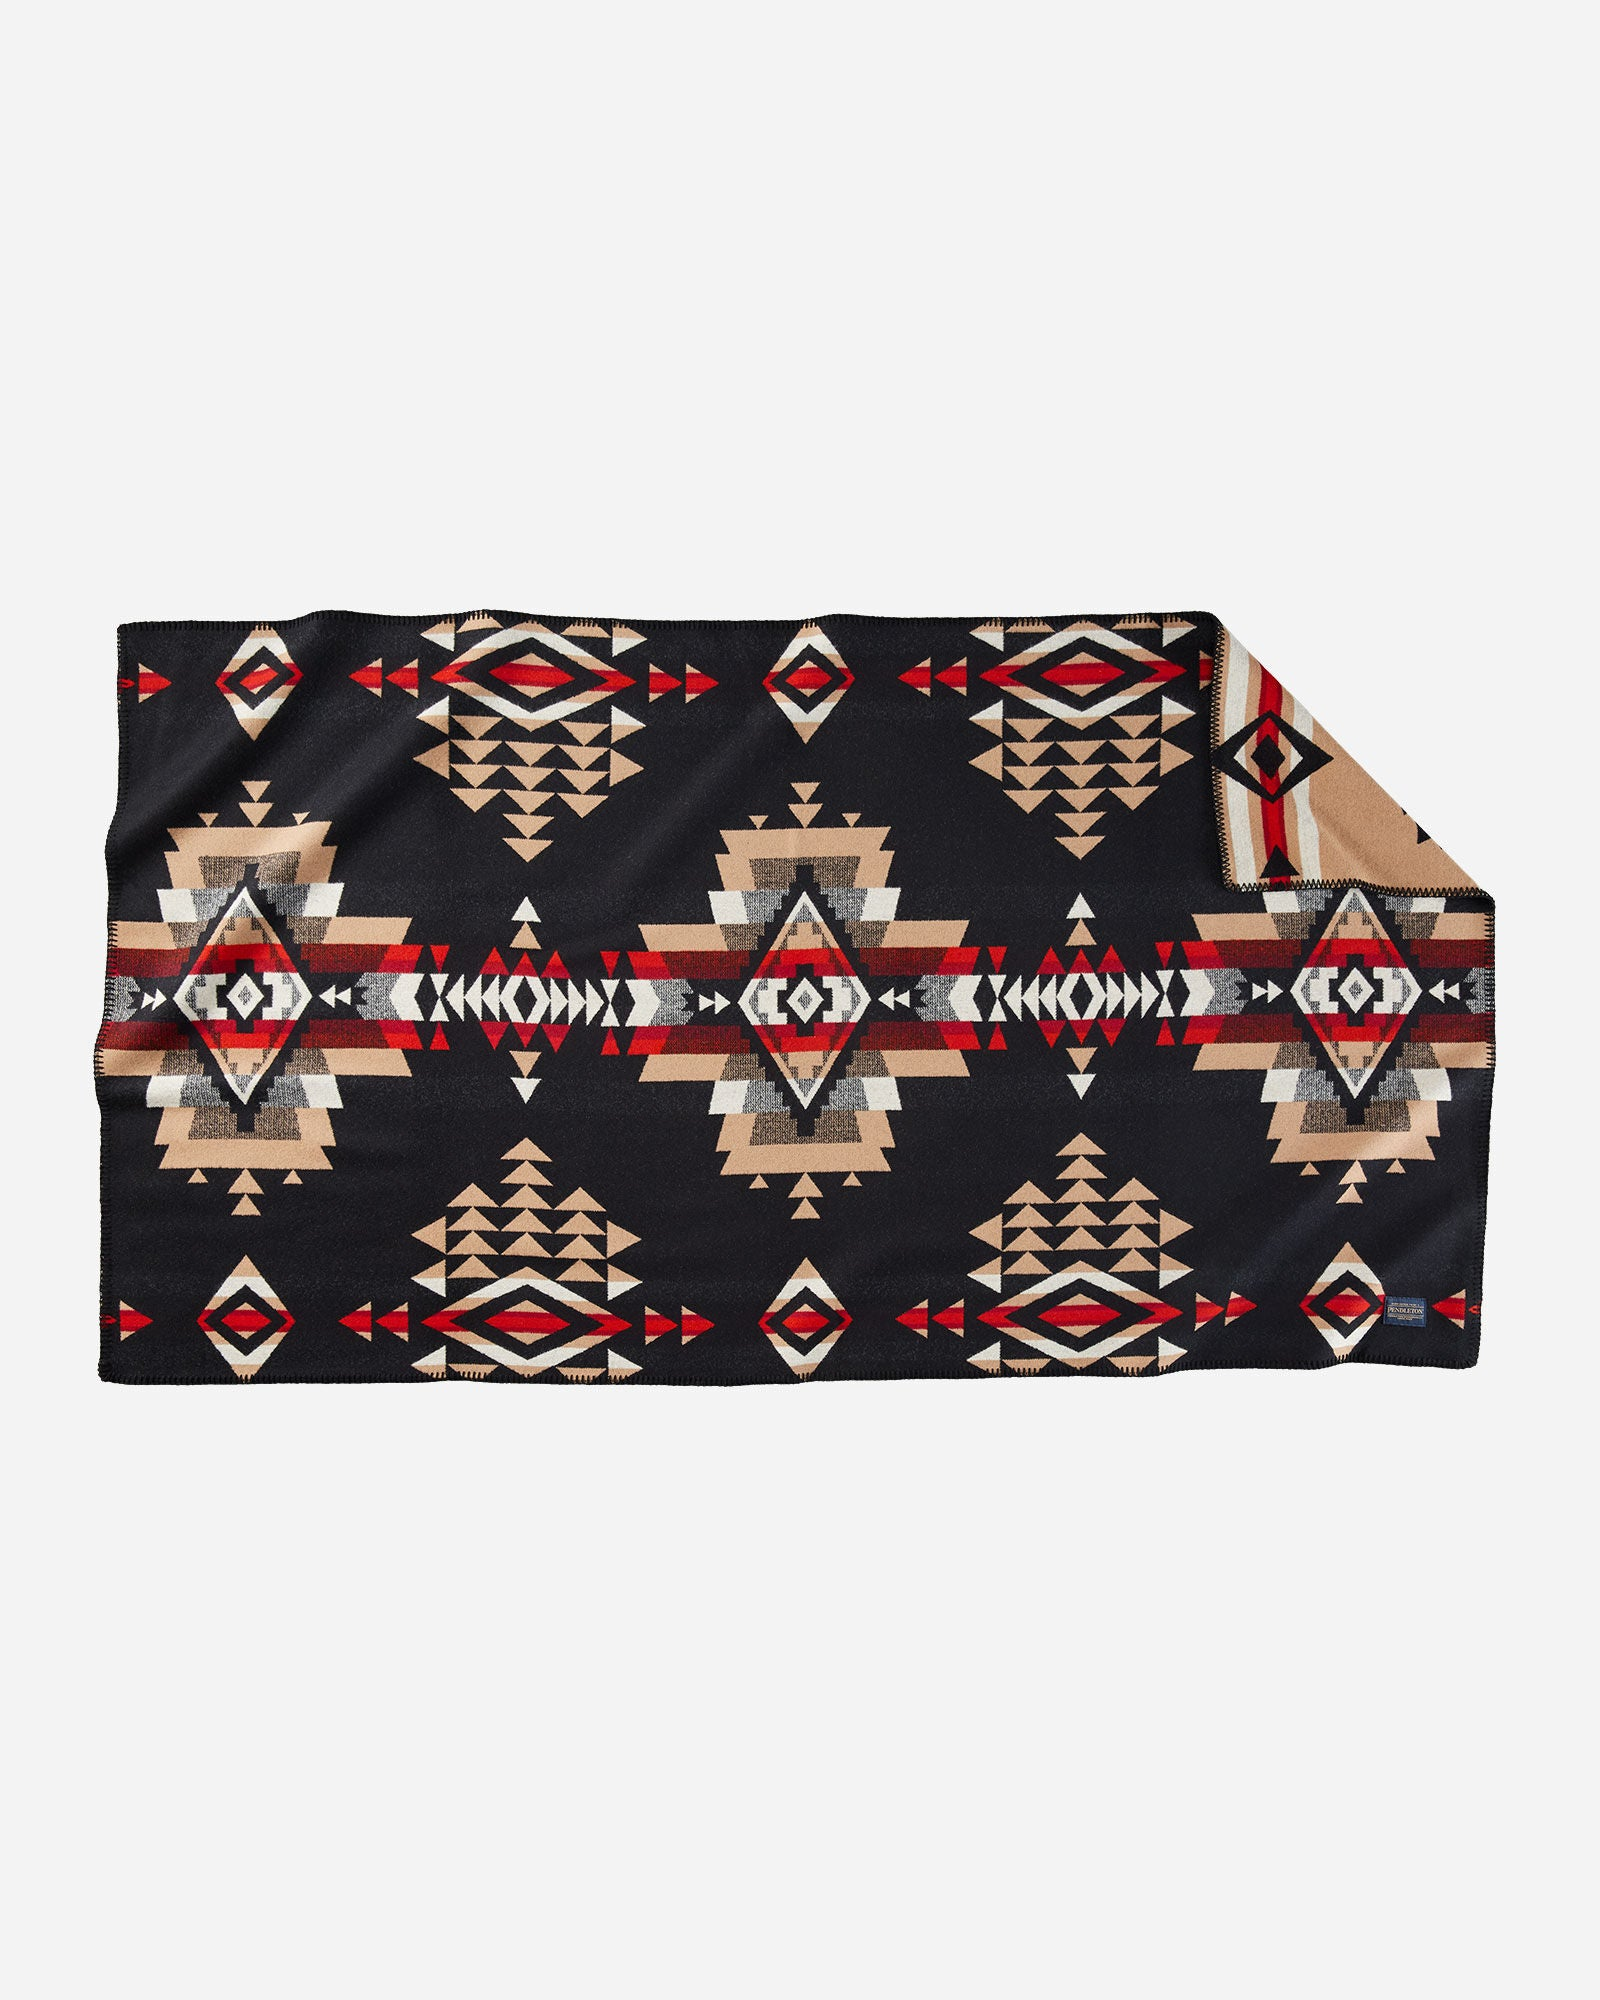 Pendleton® Saddle Blanket, Rock Point, Black